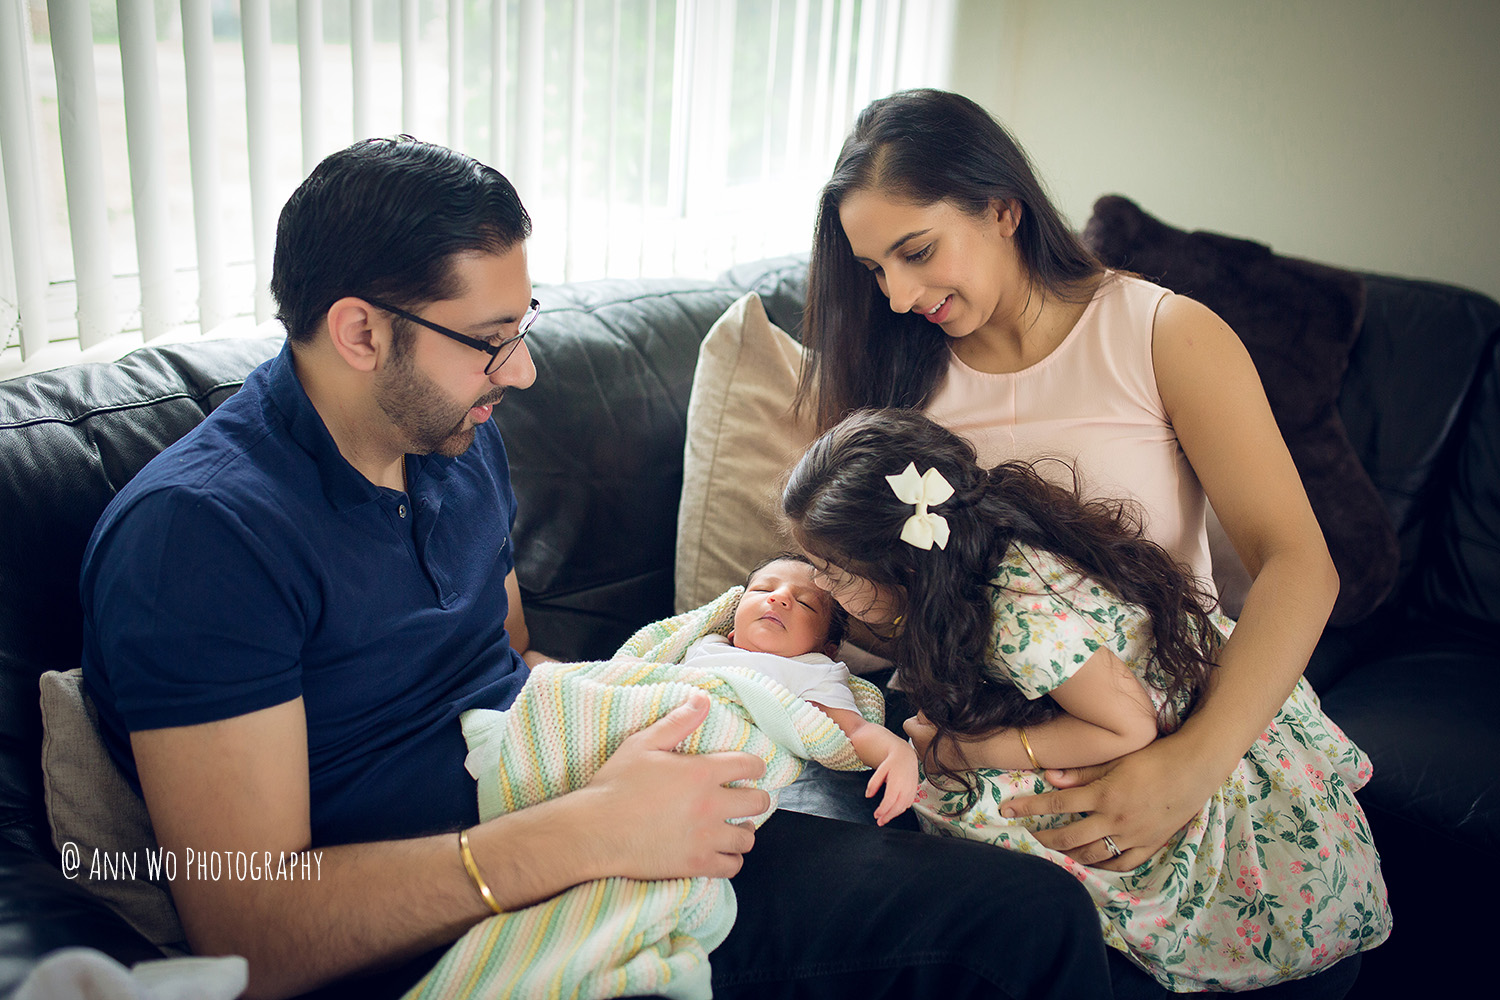 newborn-photography-berkshire-ann-wo-24.JPG